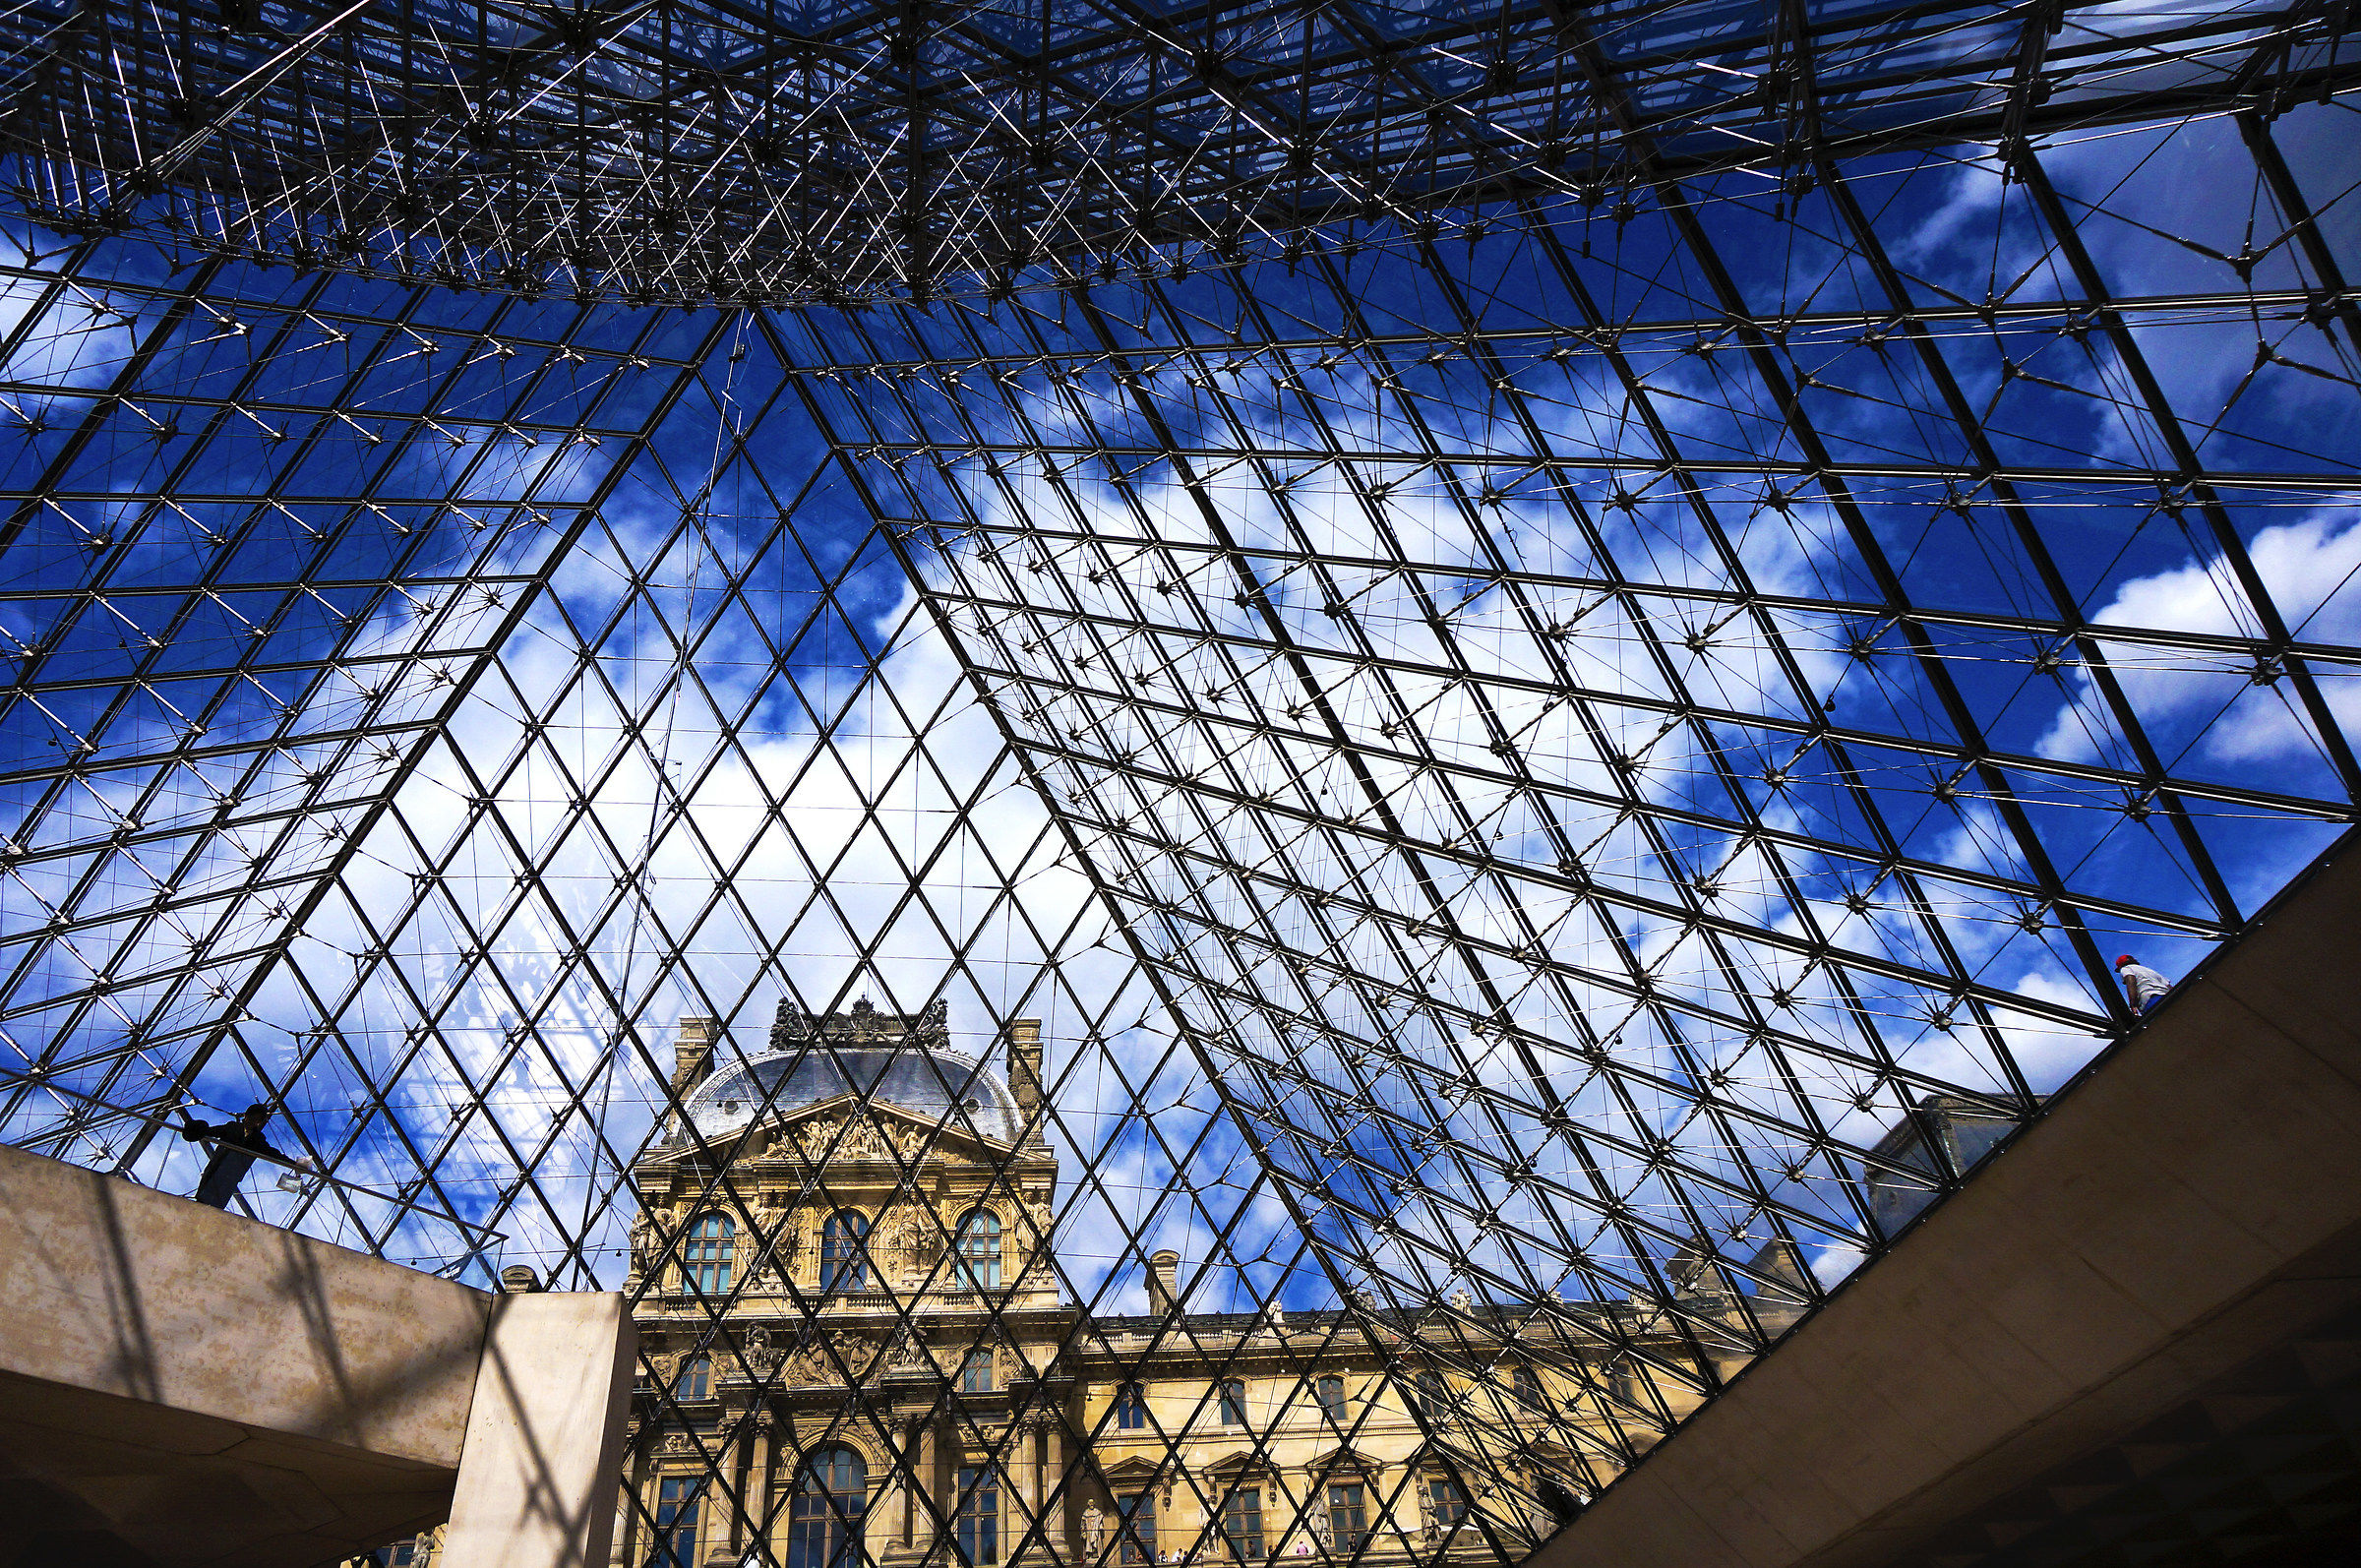 From the pyramid of the Louvre...